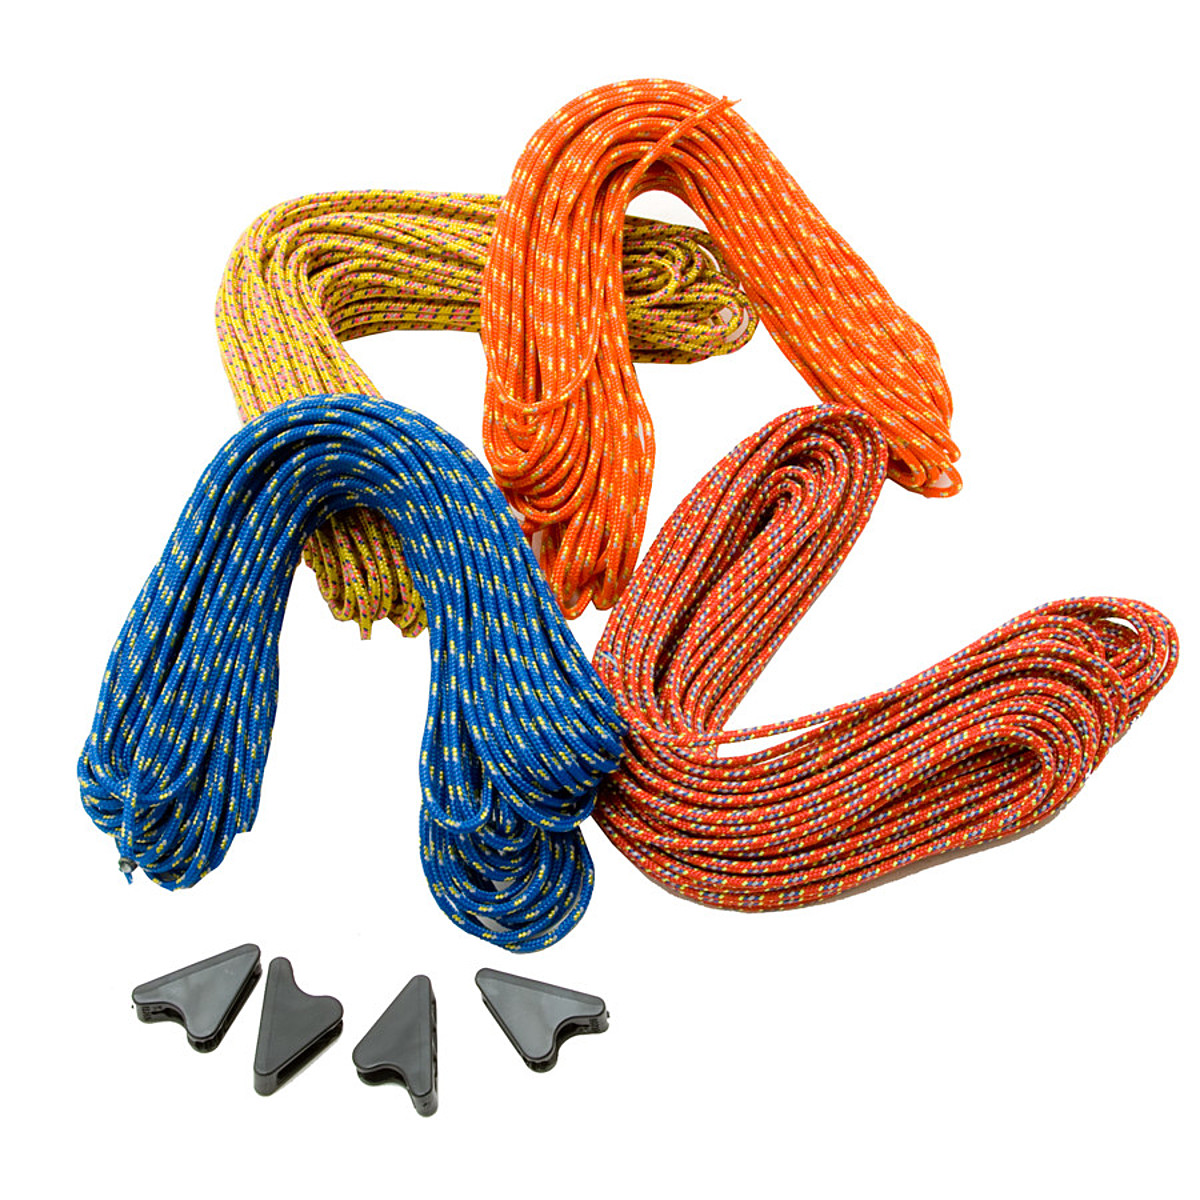 Sterling Rope GloCord with Line Locks